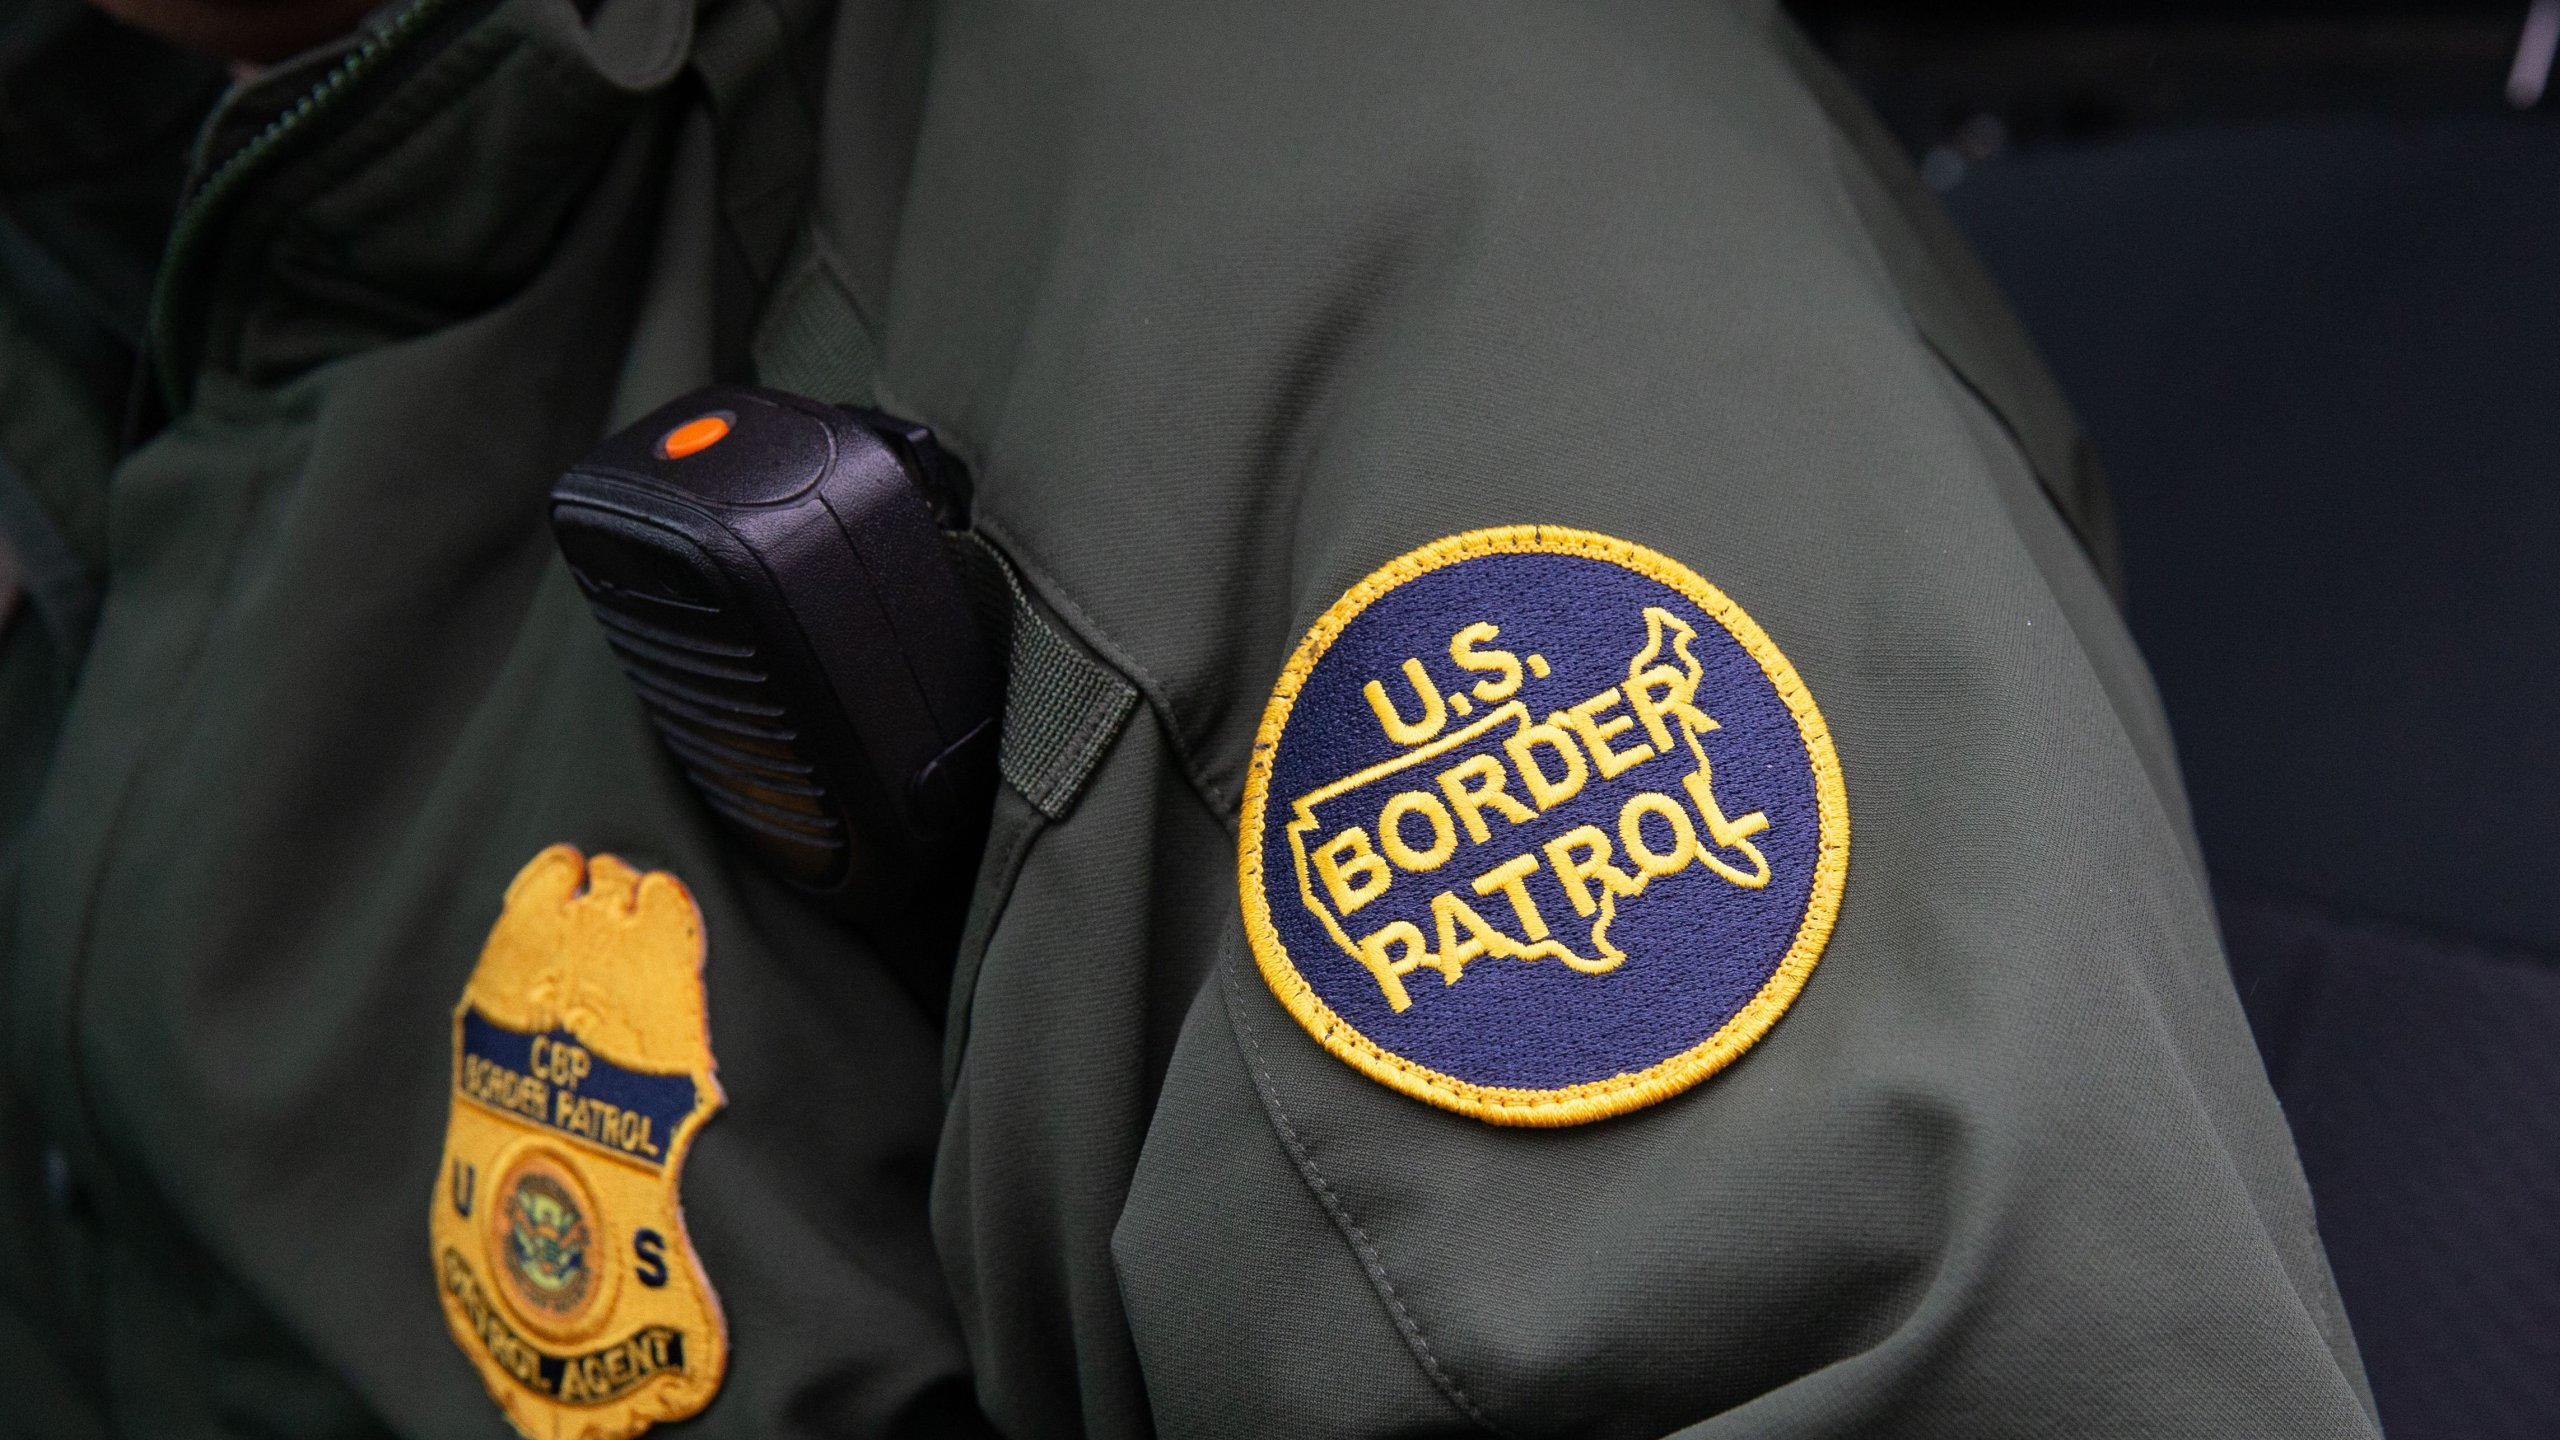 This photo shows a U.S. Border Patrol patch on a border agent's uniform in McAllen, Texas, on Jan. 15, 2019. (Credit: SUZANNE CORDEIRO/AFP via Getty Images)